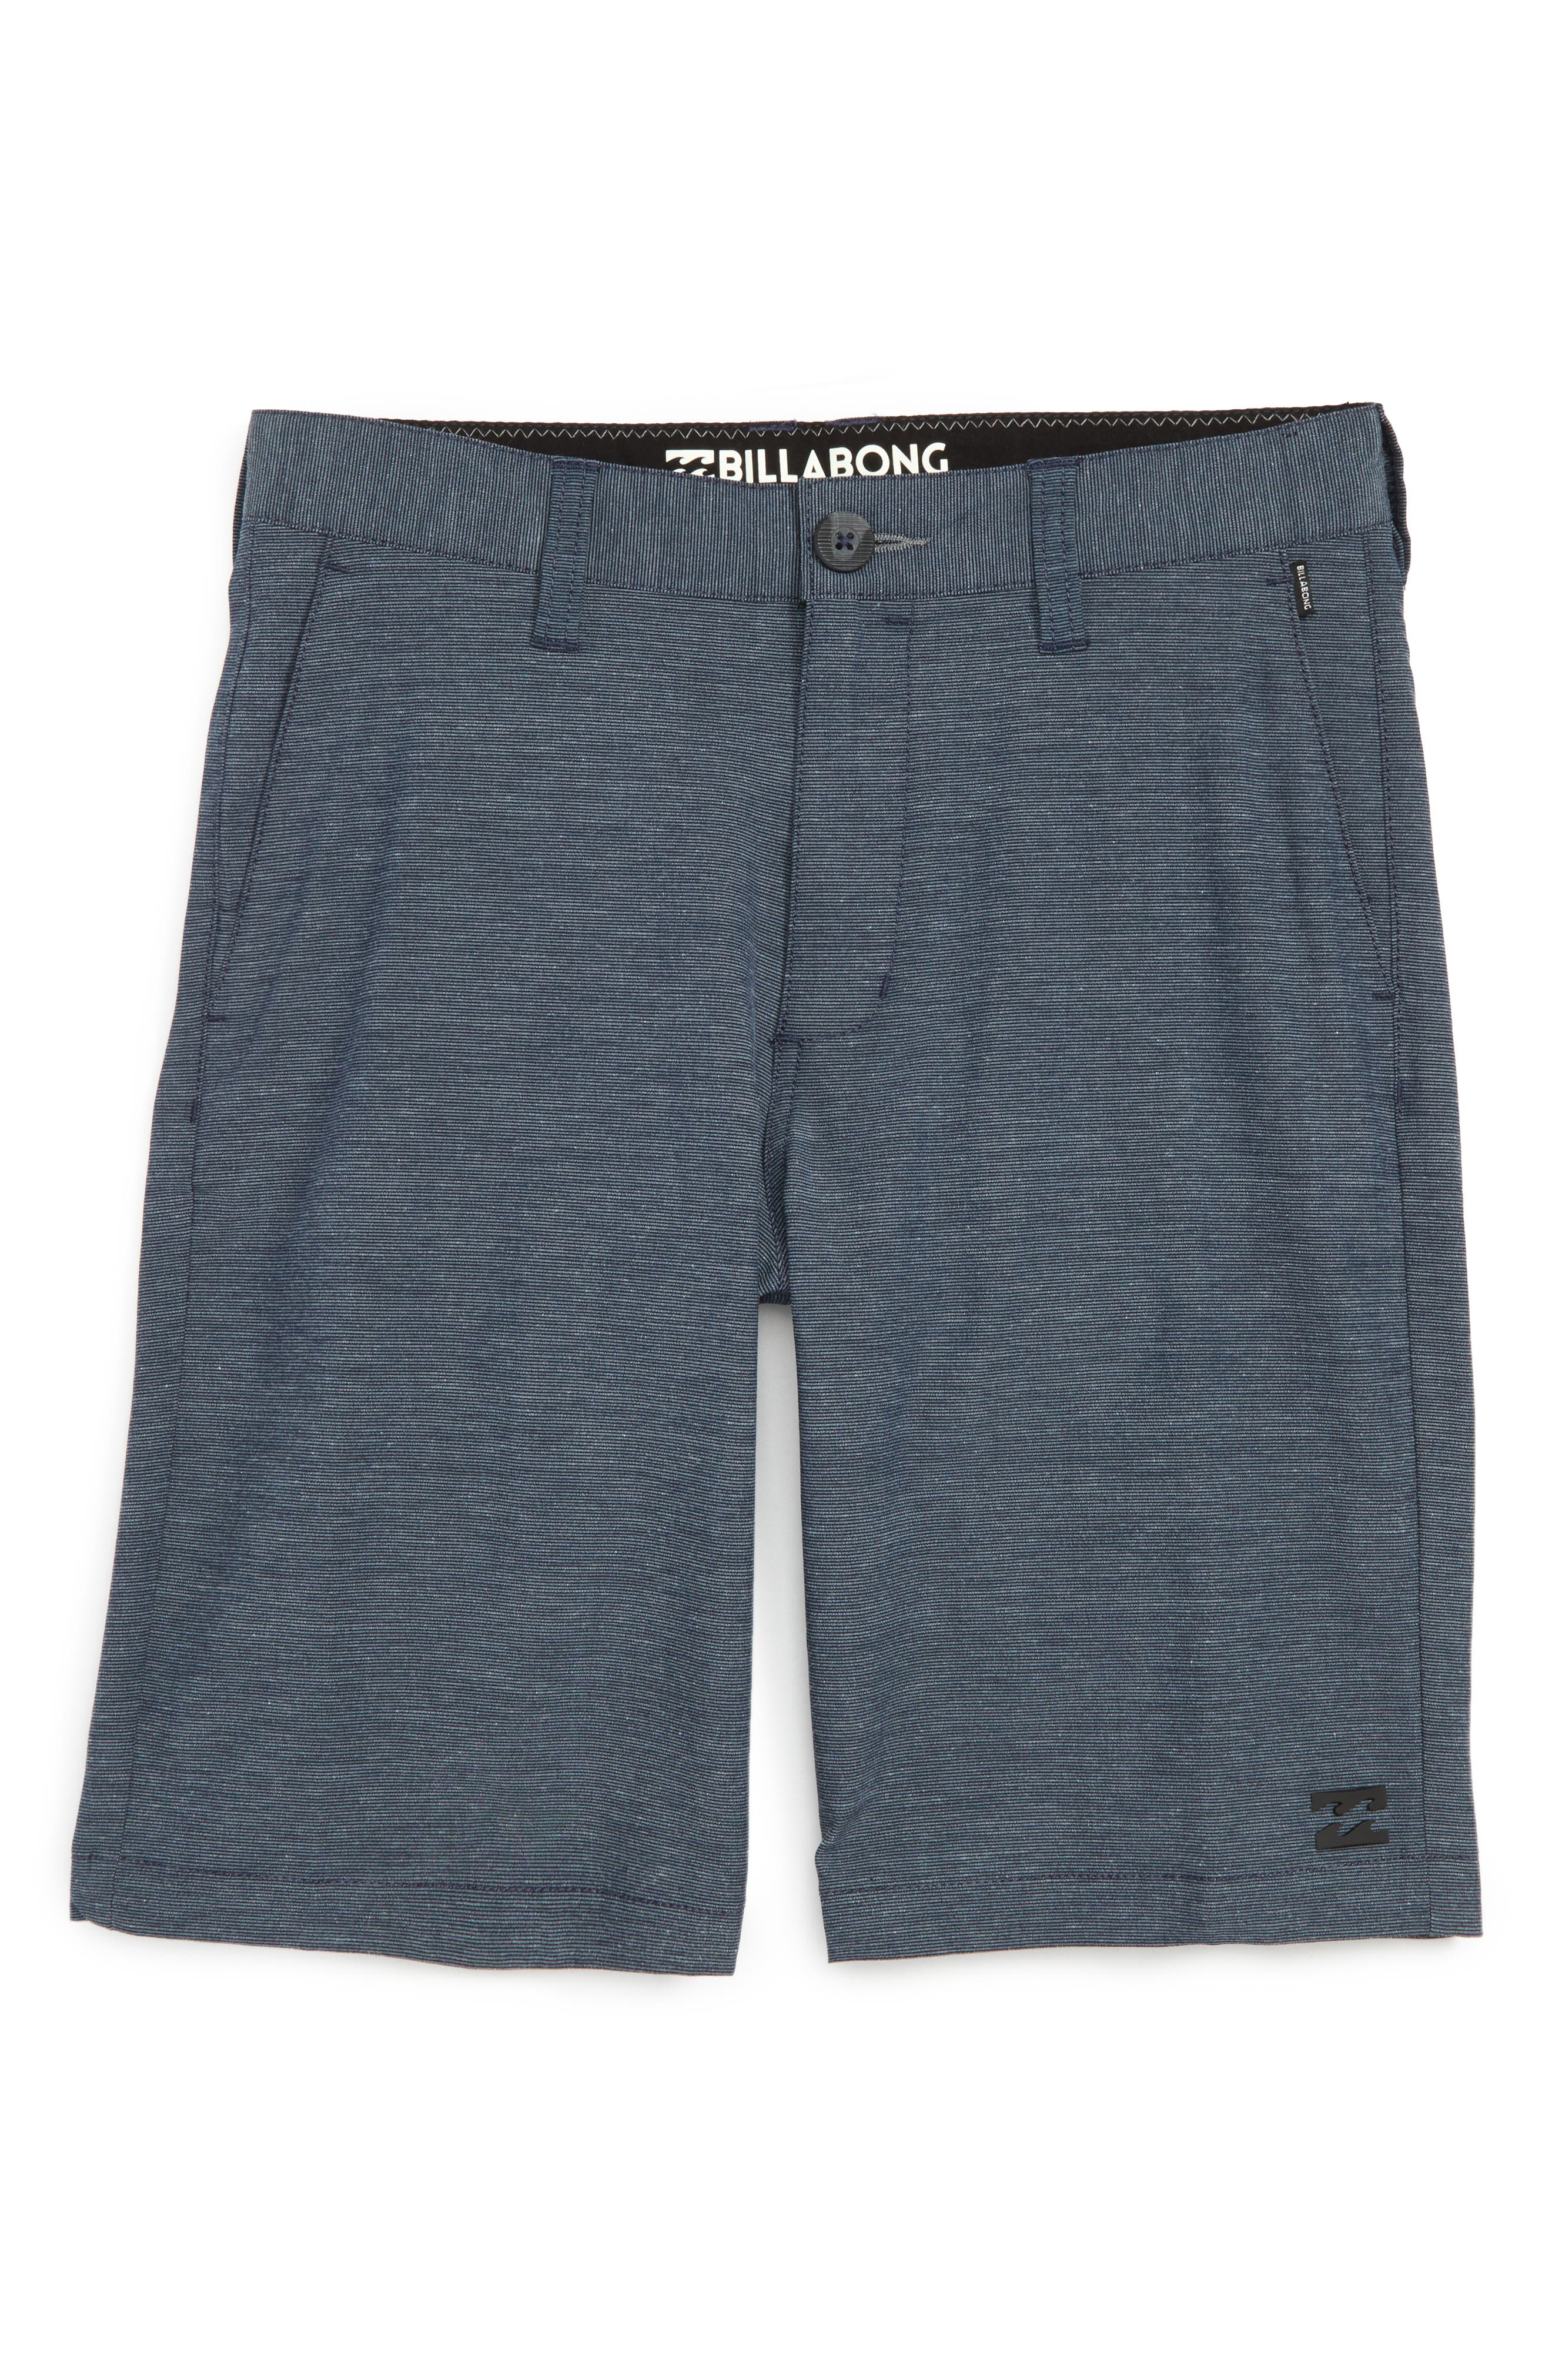 Crossfire X Submersible Hybrid Shorts,                         Main,                         color, 400